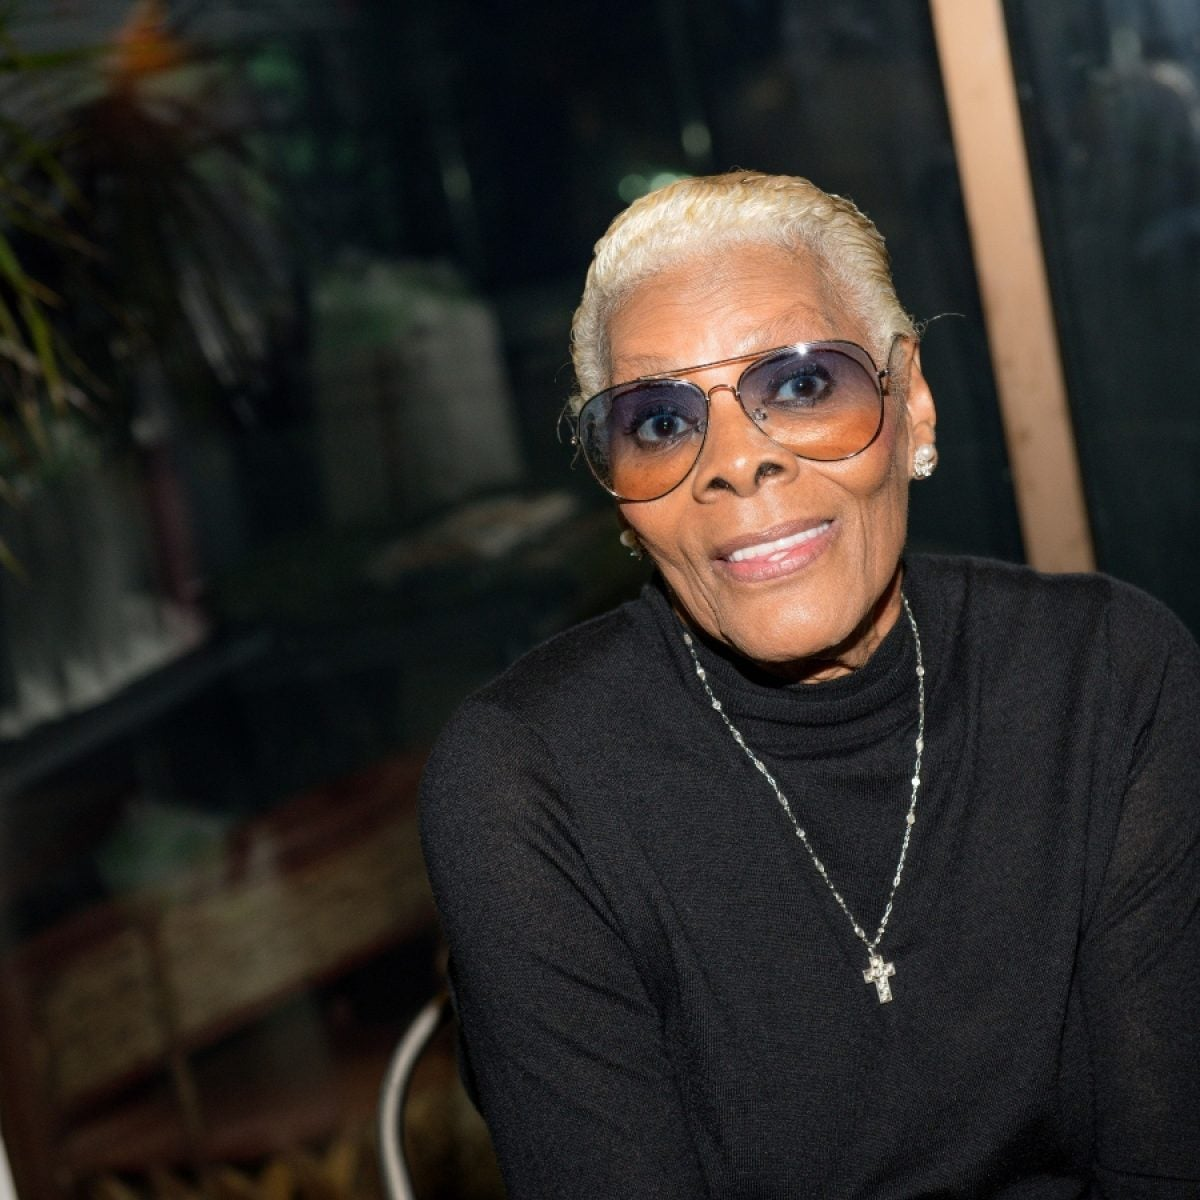 Exclusive: Dionne Warwick On Joining Twitter To Put A 'Grownup' In The Room